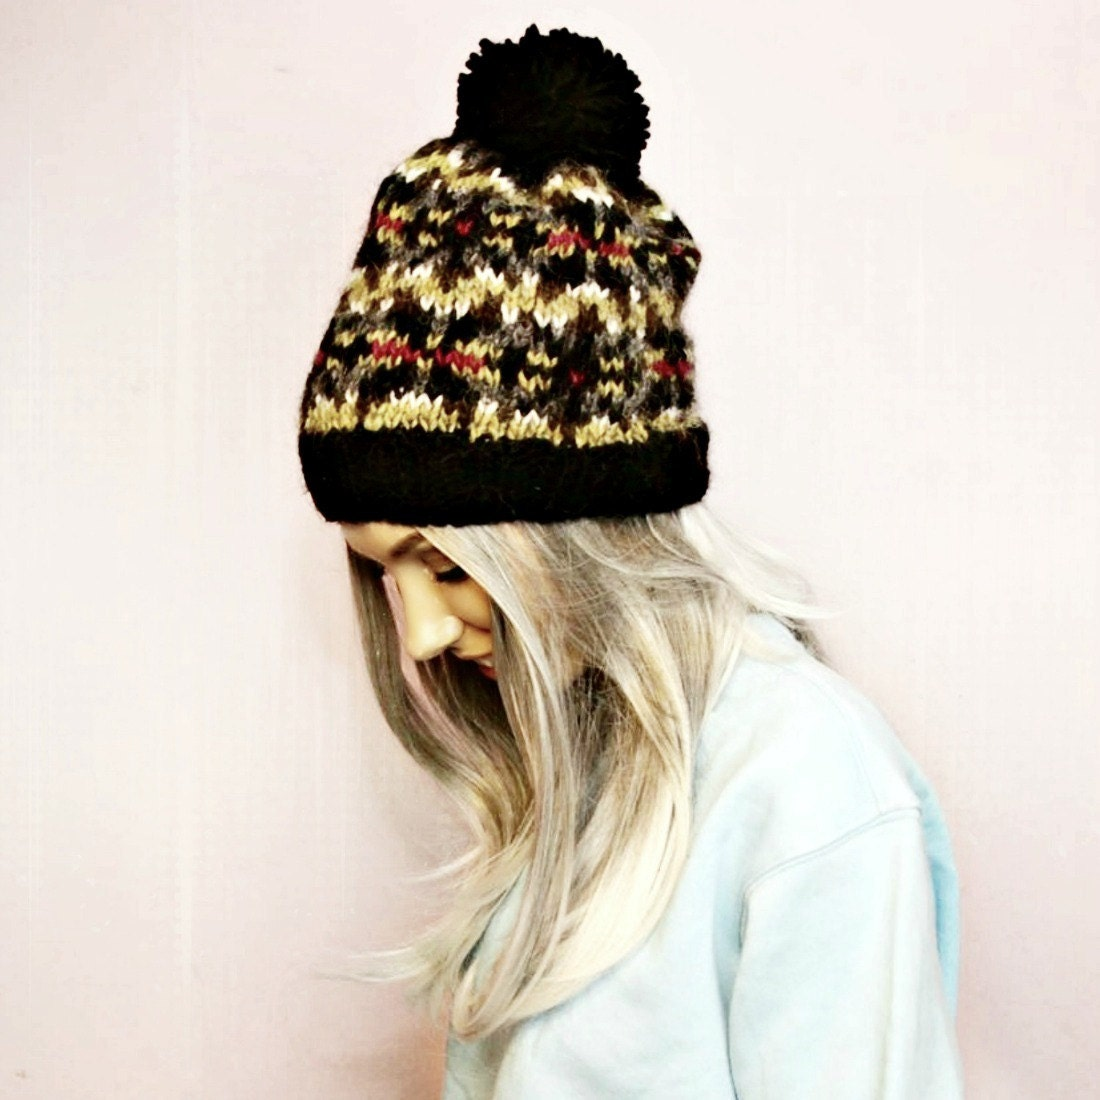 Knitted Hat  Wool Hat  Fair Isle  Alafosslopi  Bobble Hat  Hat For Woman  Hat For Man  Unisex